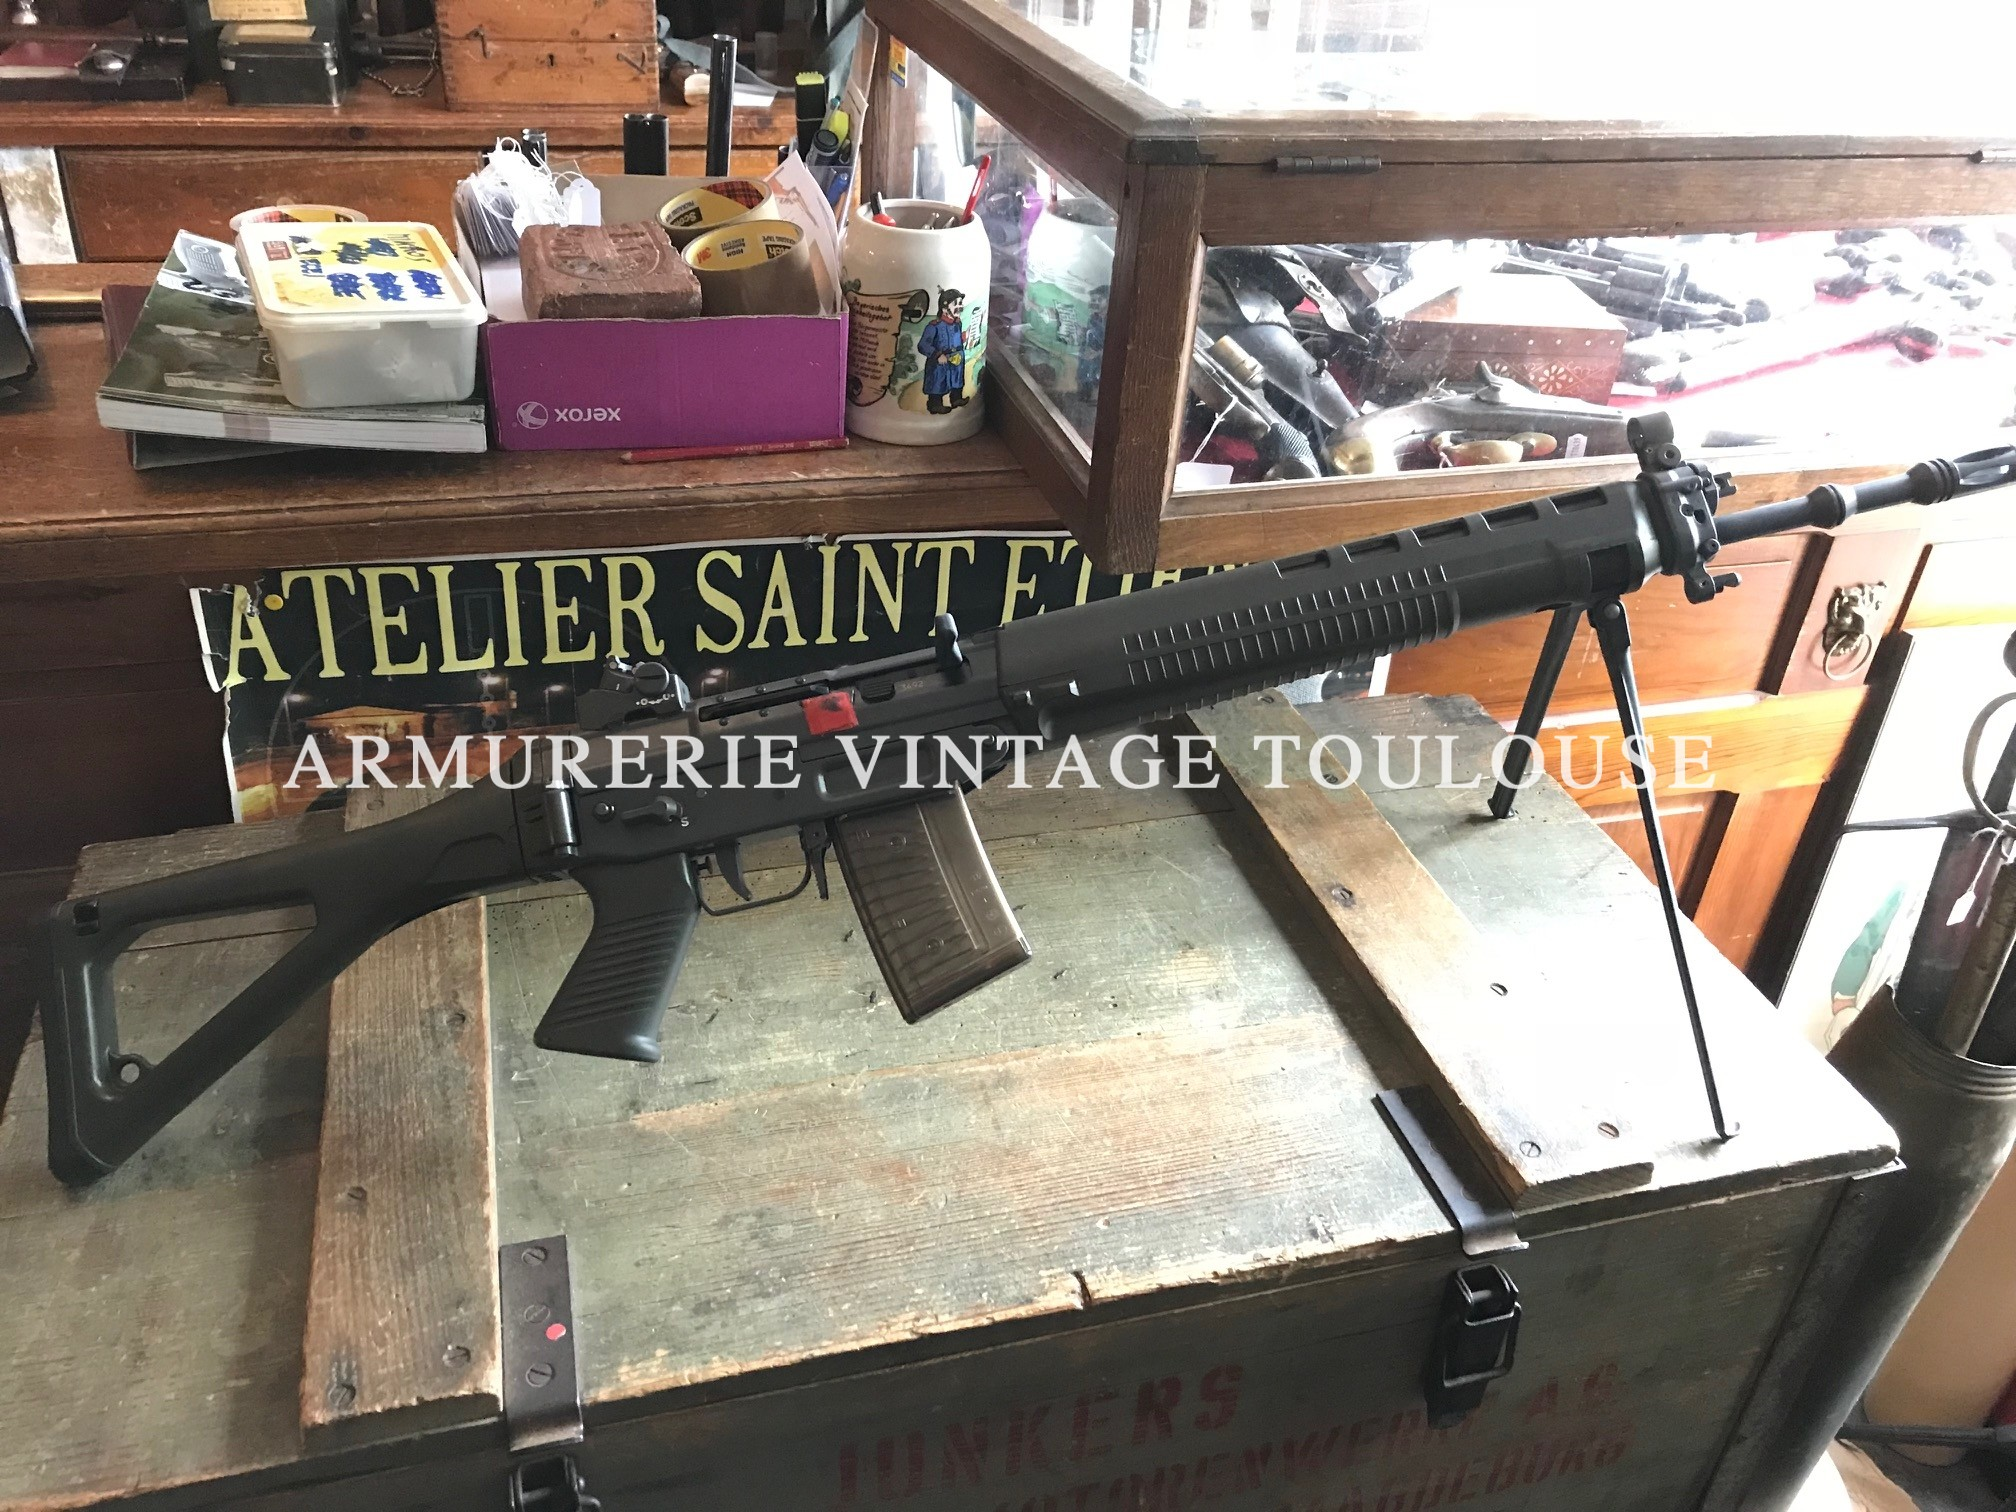 Superbe FASS 90 (SIG 550) réglementaire Suisse (version semi automatique) calibre 223 Remington